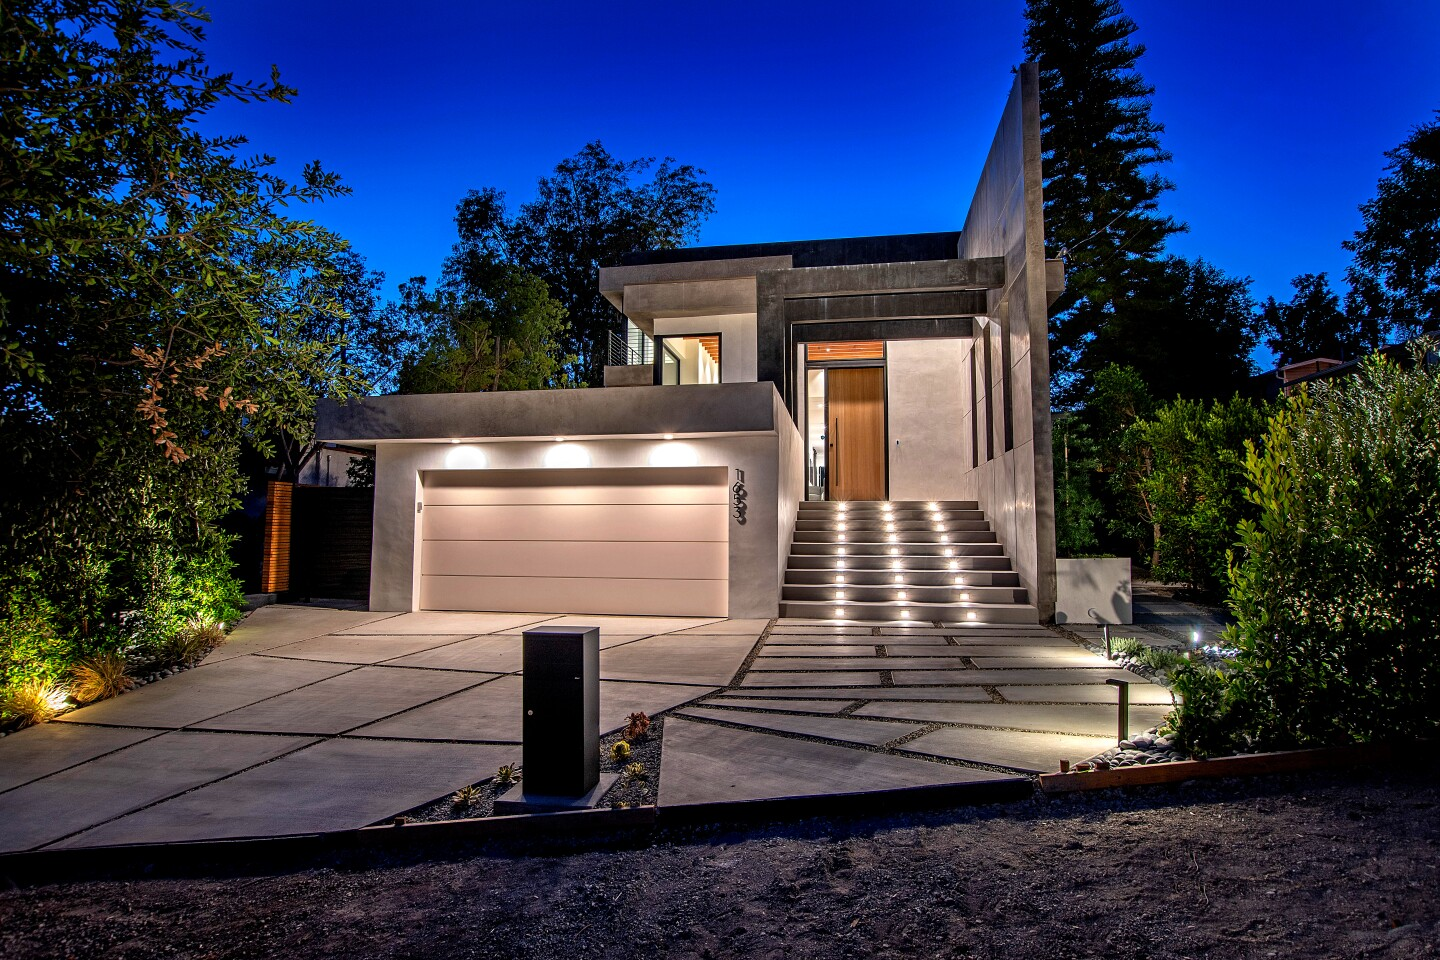 The newly built Silver Lake home, listed for $3.599 million, stands out from the street with its subdued hues, clean lines and modern arcade that tops the entry. Inside, the open-concept floor plan turns the page with French oak floors and white walls that brighten the interior. Leathered quartz countertops create visual interest in the kitchen, which has an island and bi-folding doors that open to the patio. Outside, there's a swimming pool and spa. A rooftop deck creates an additional 1,500 square feet of living space above.